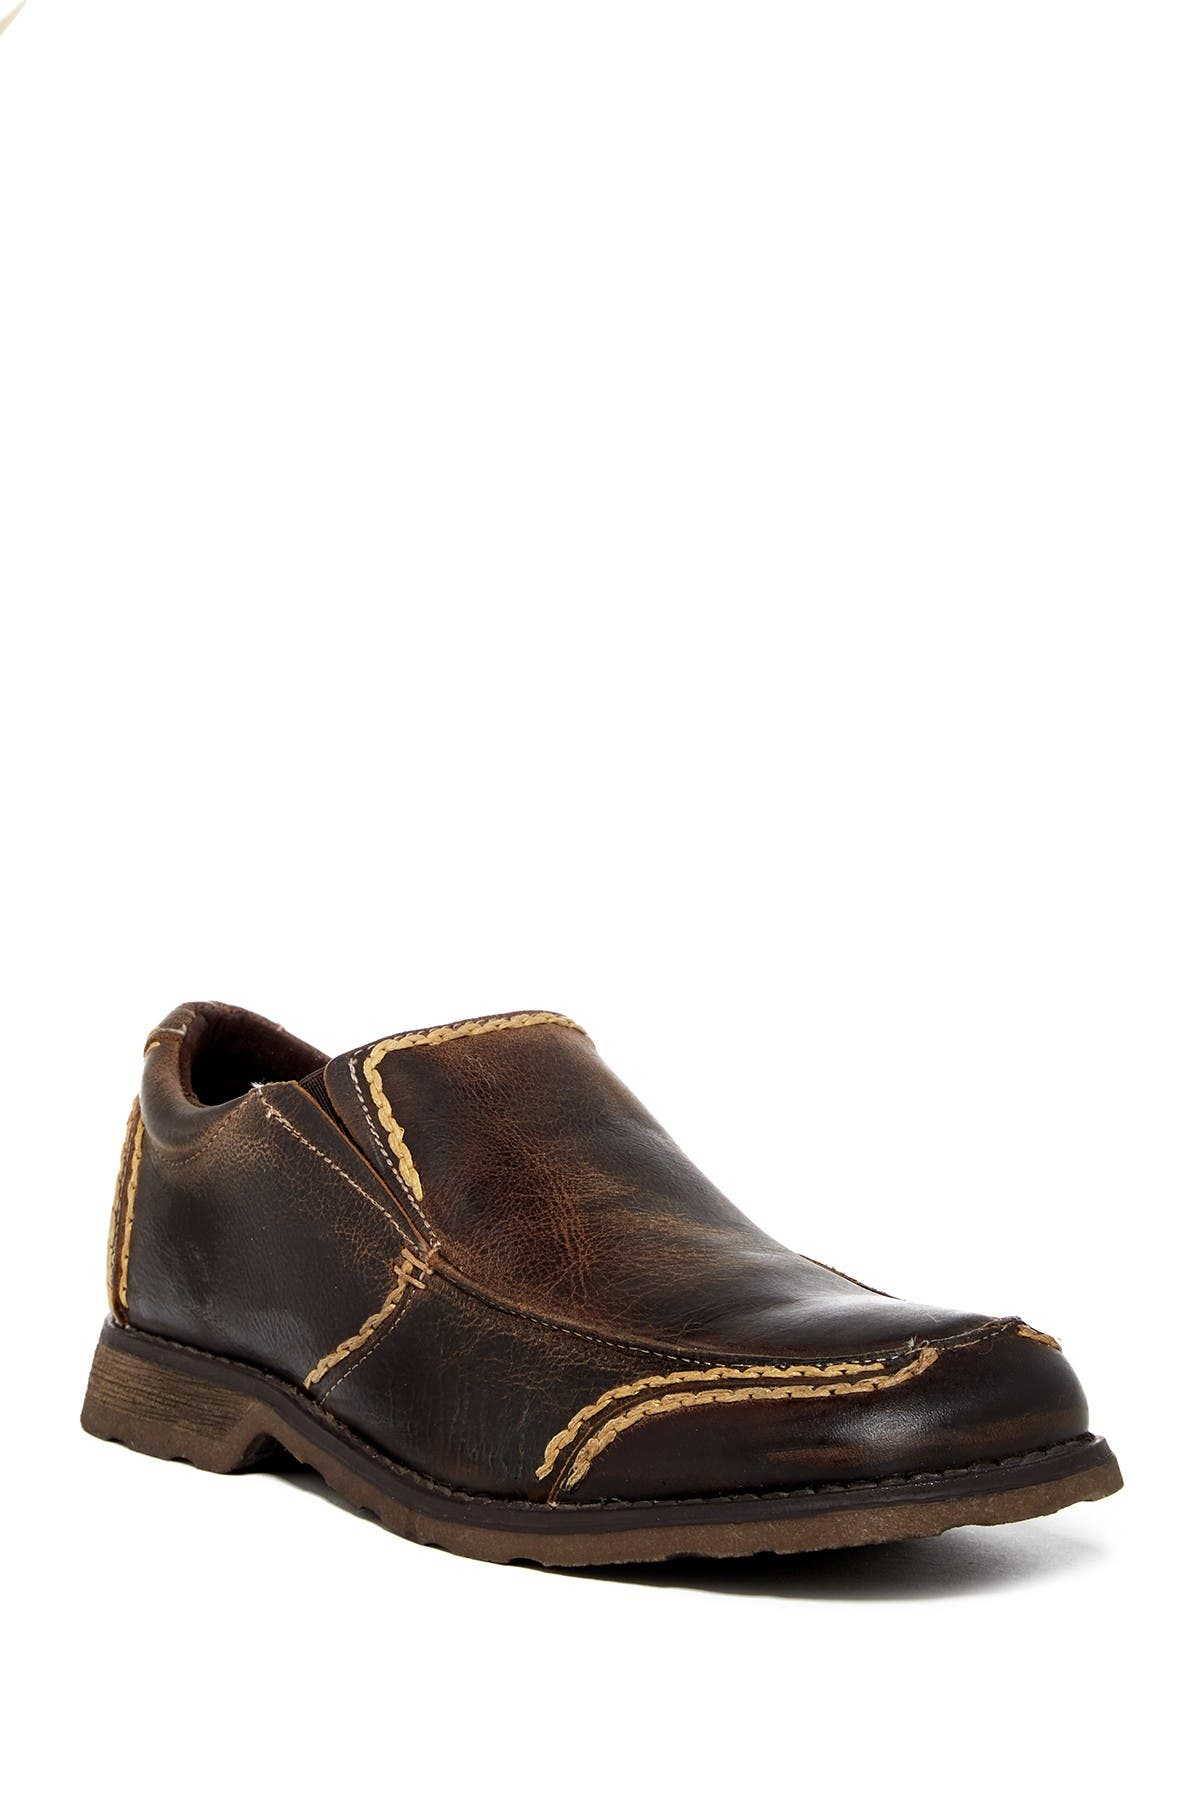 Image of Roan Mirage Leather Loafer